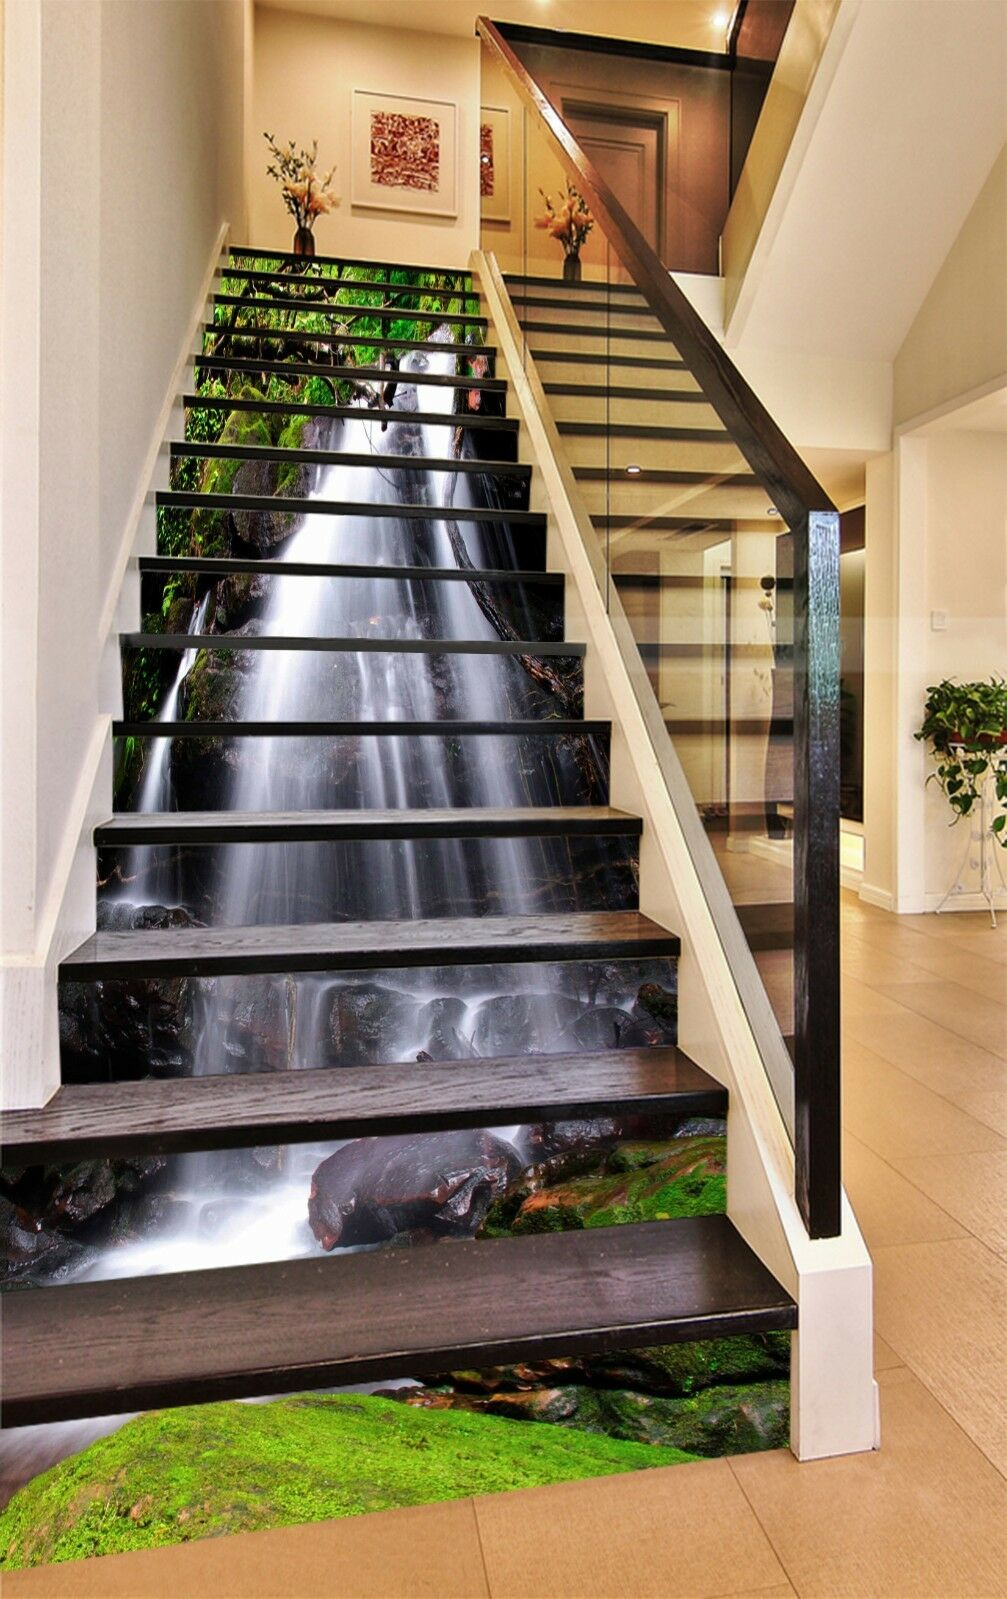 3D Leaf waterfall 7 Stair Risers Decoration Photo Mural Vinyl Decal Wallpaper UK